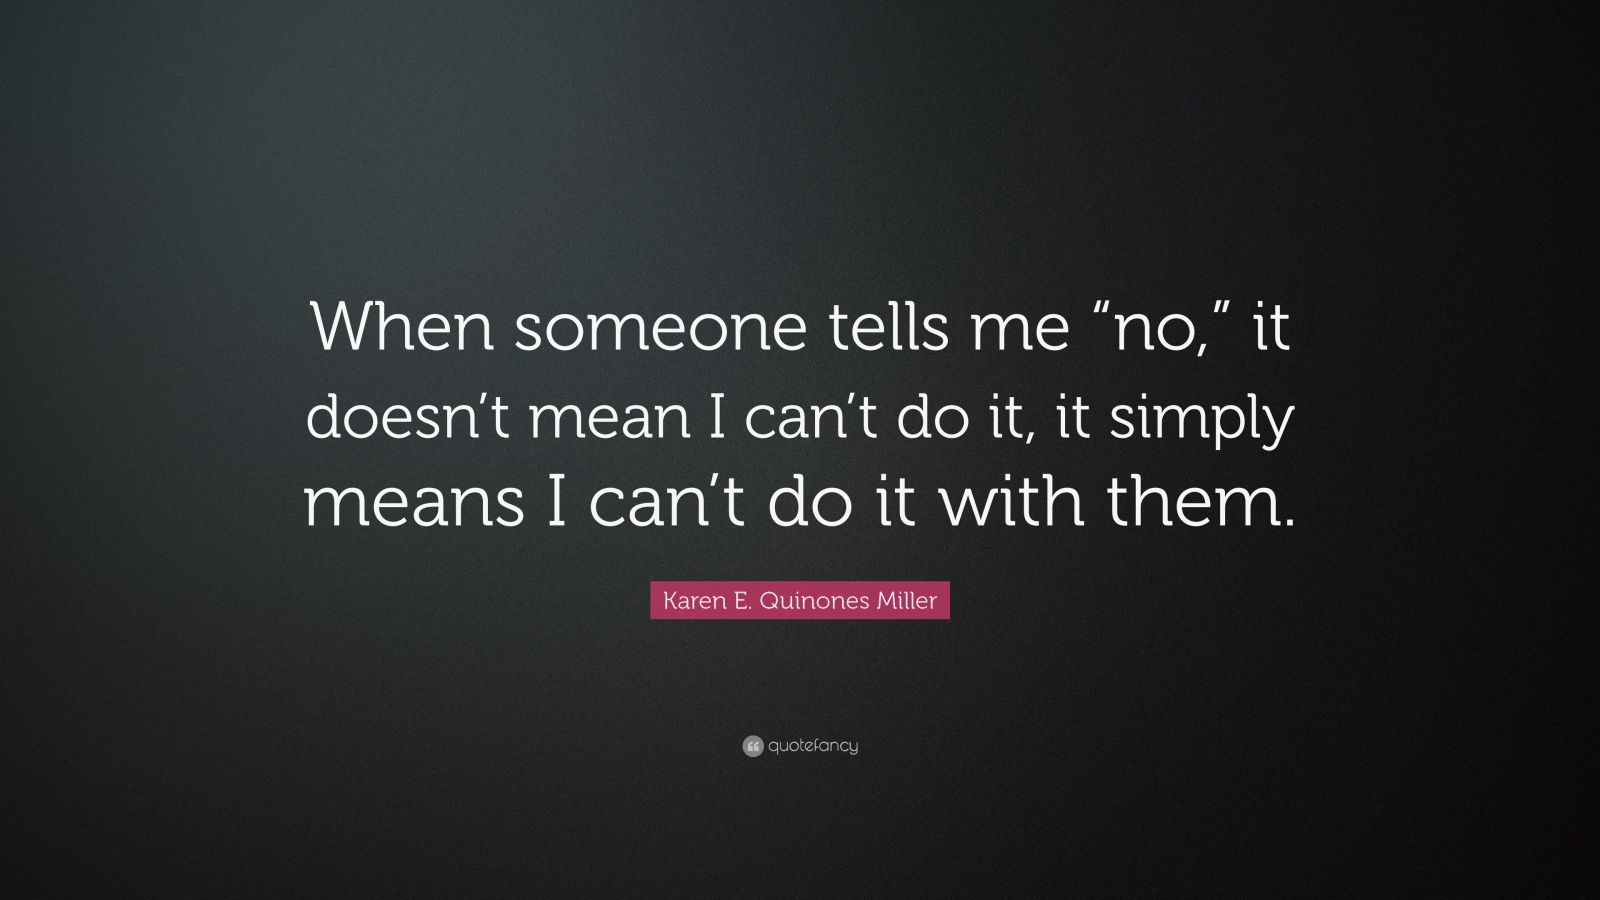 """Karen E. Quinones Miller Quote: """"When someone tells me """"no,"""" it doesn't mean I can't do it, it simply means I can't do it with them."""""""